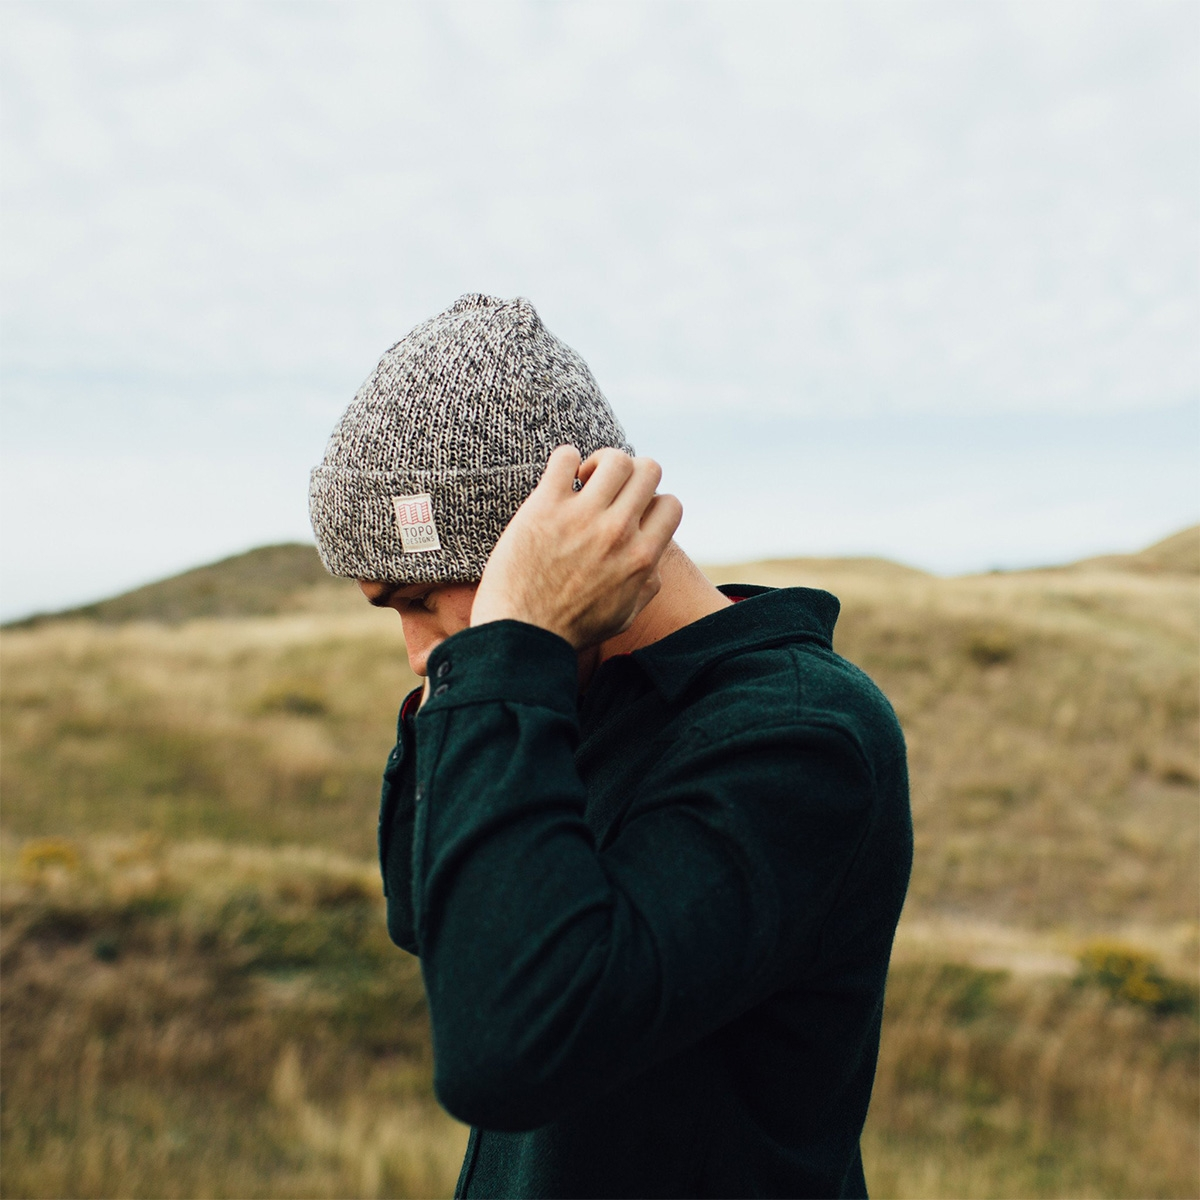 Topo Designs Topo Designs Ragg Cap Charcoal, this time-tested classic ragg wool cap is heavy-duty, sturdy and warm